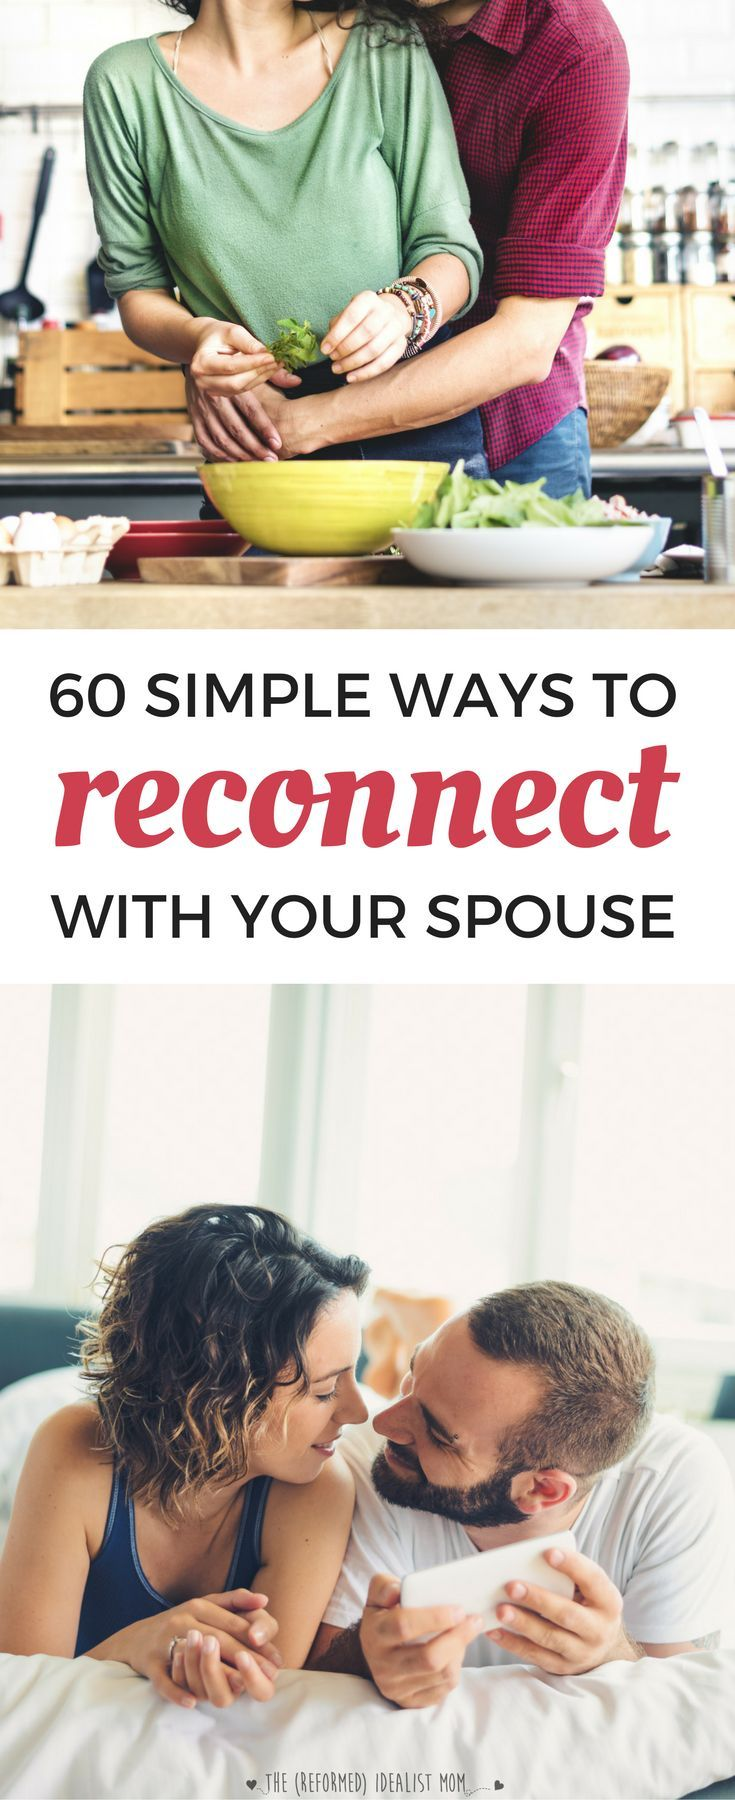 In the chaos of parenting life, it's easy to feel disconnected from your spouse. But if you follow the Magic 5:1 Ratio, you'll make your marriage last plus feel closer than ever to your partner. Download this FREE cheat sheet of simple ways you can reconn